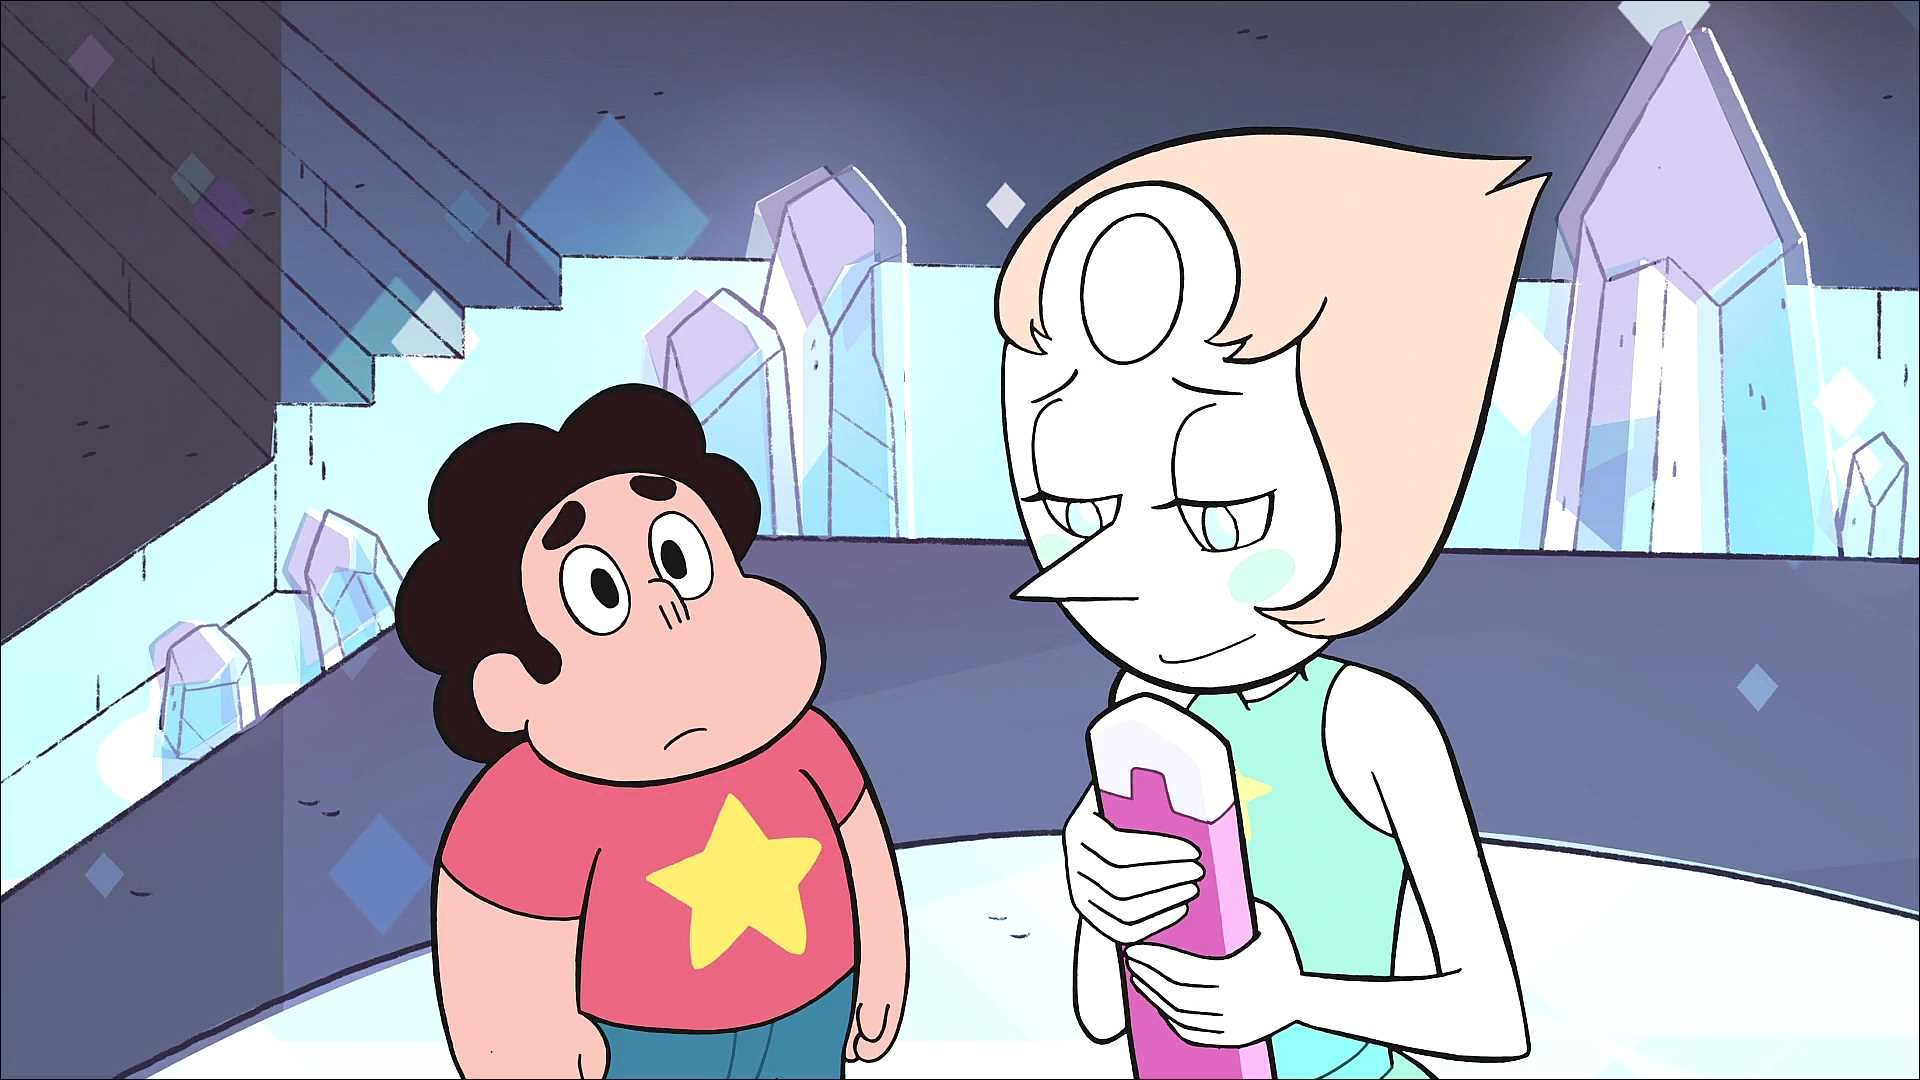 cartoon network uk censoring steven universe s sexuality misses the